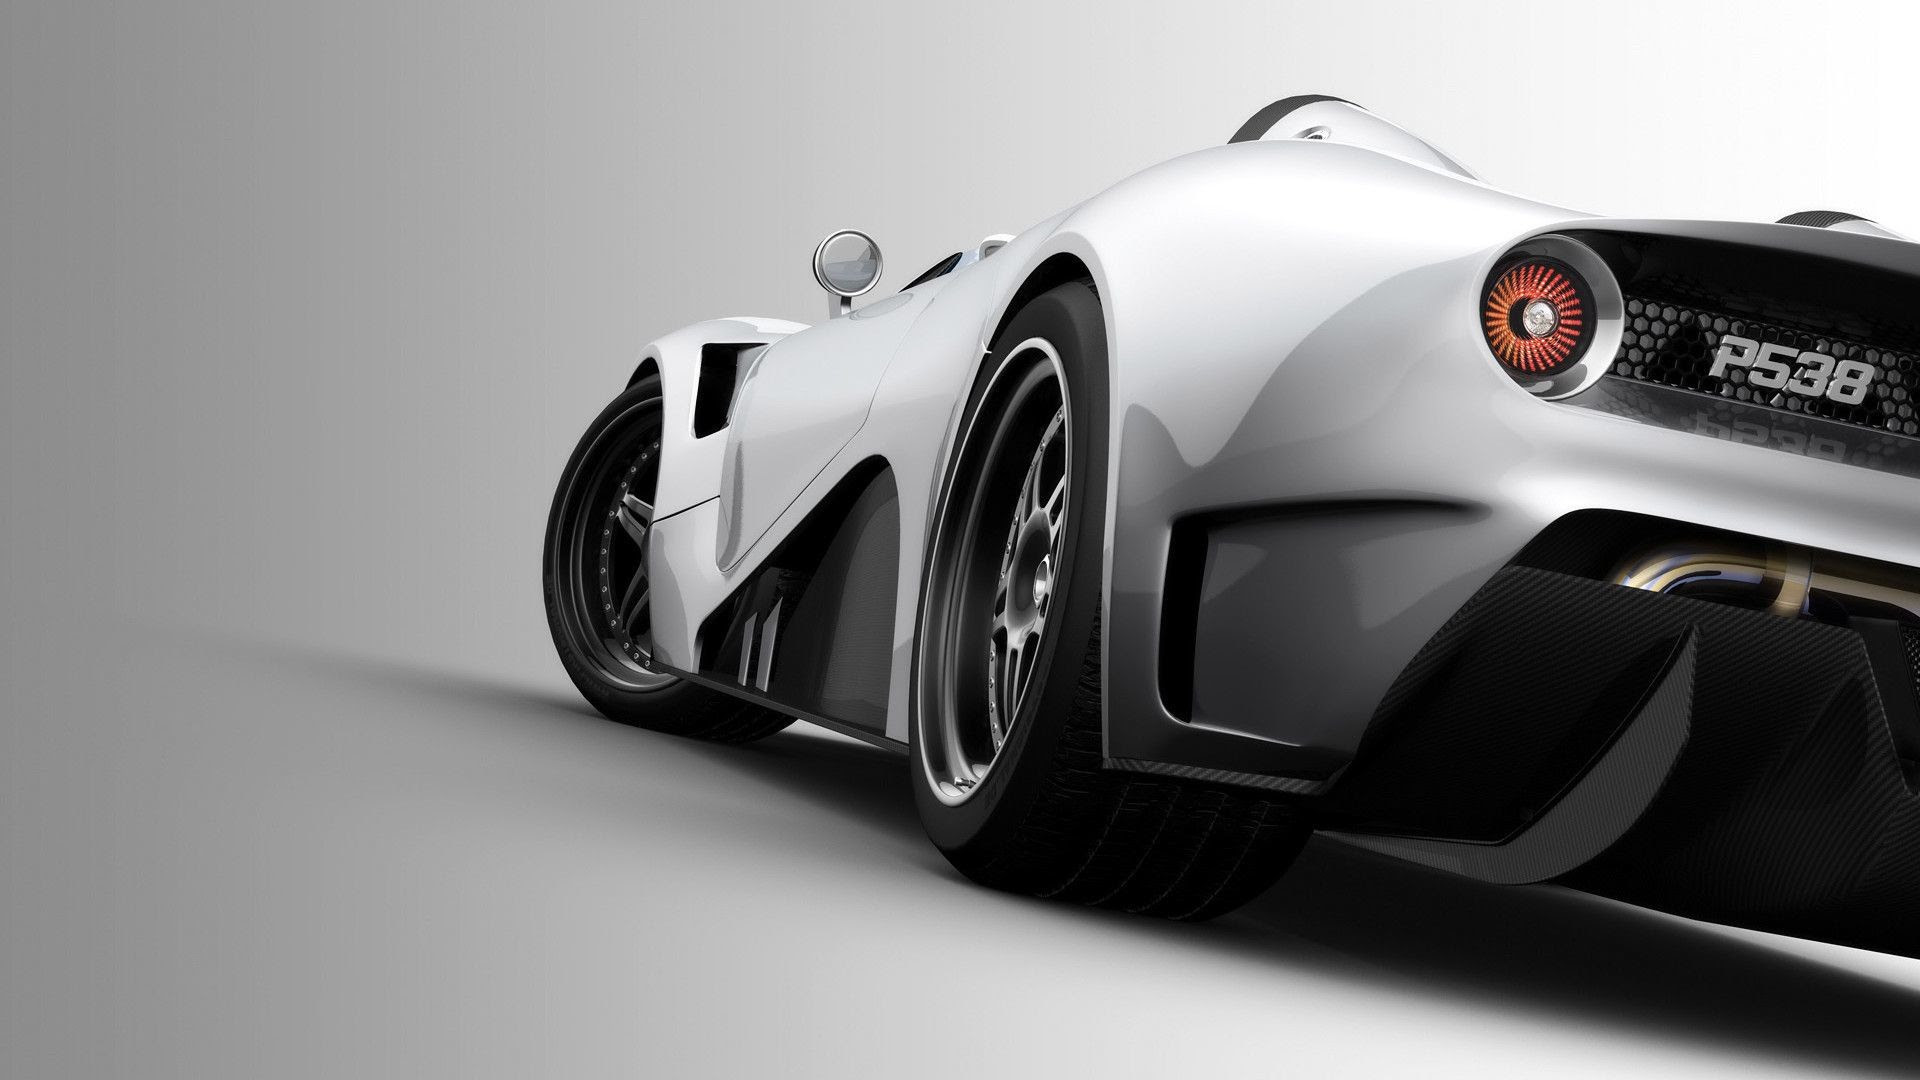 Cool Car Wallpapers HD 1080p 72+ images